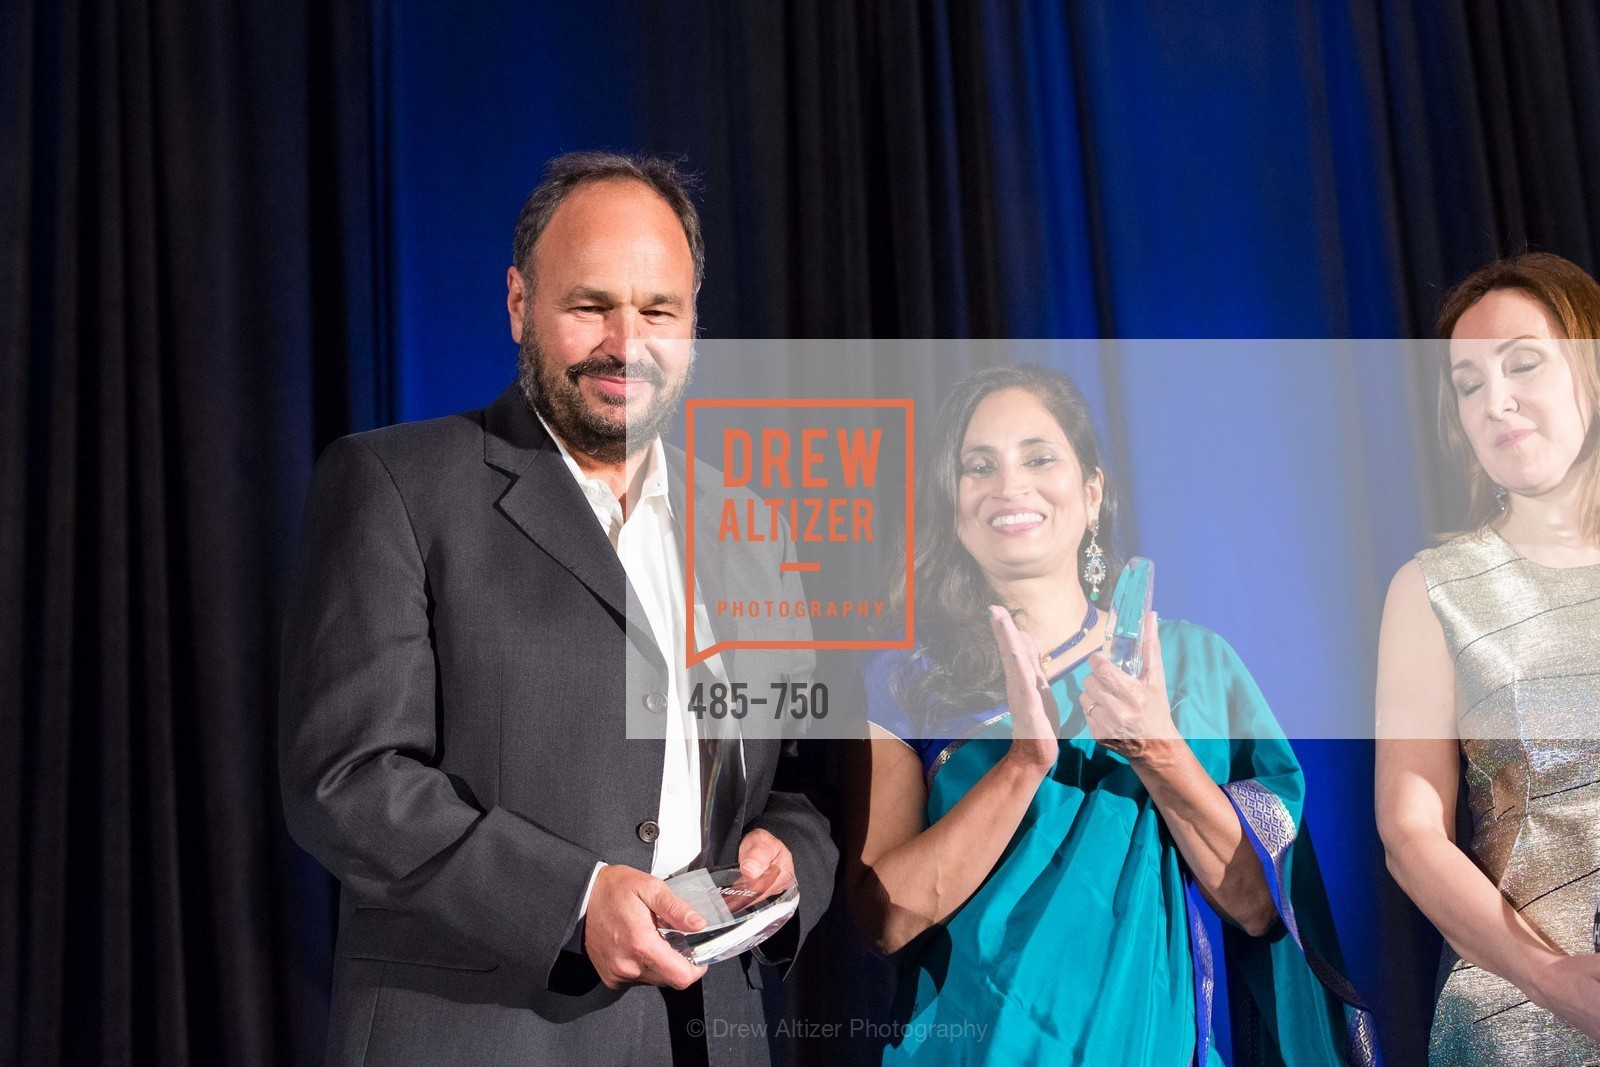 Paul Maritz, Padmasree Warrior, WORLD AFFAIRS COUNCIL Awards Dinner, US, May 27th, 2015,Drew Altizer, Drew Altizer Photography, full-service agency, private events, San Francisco photographer, photographer california